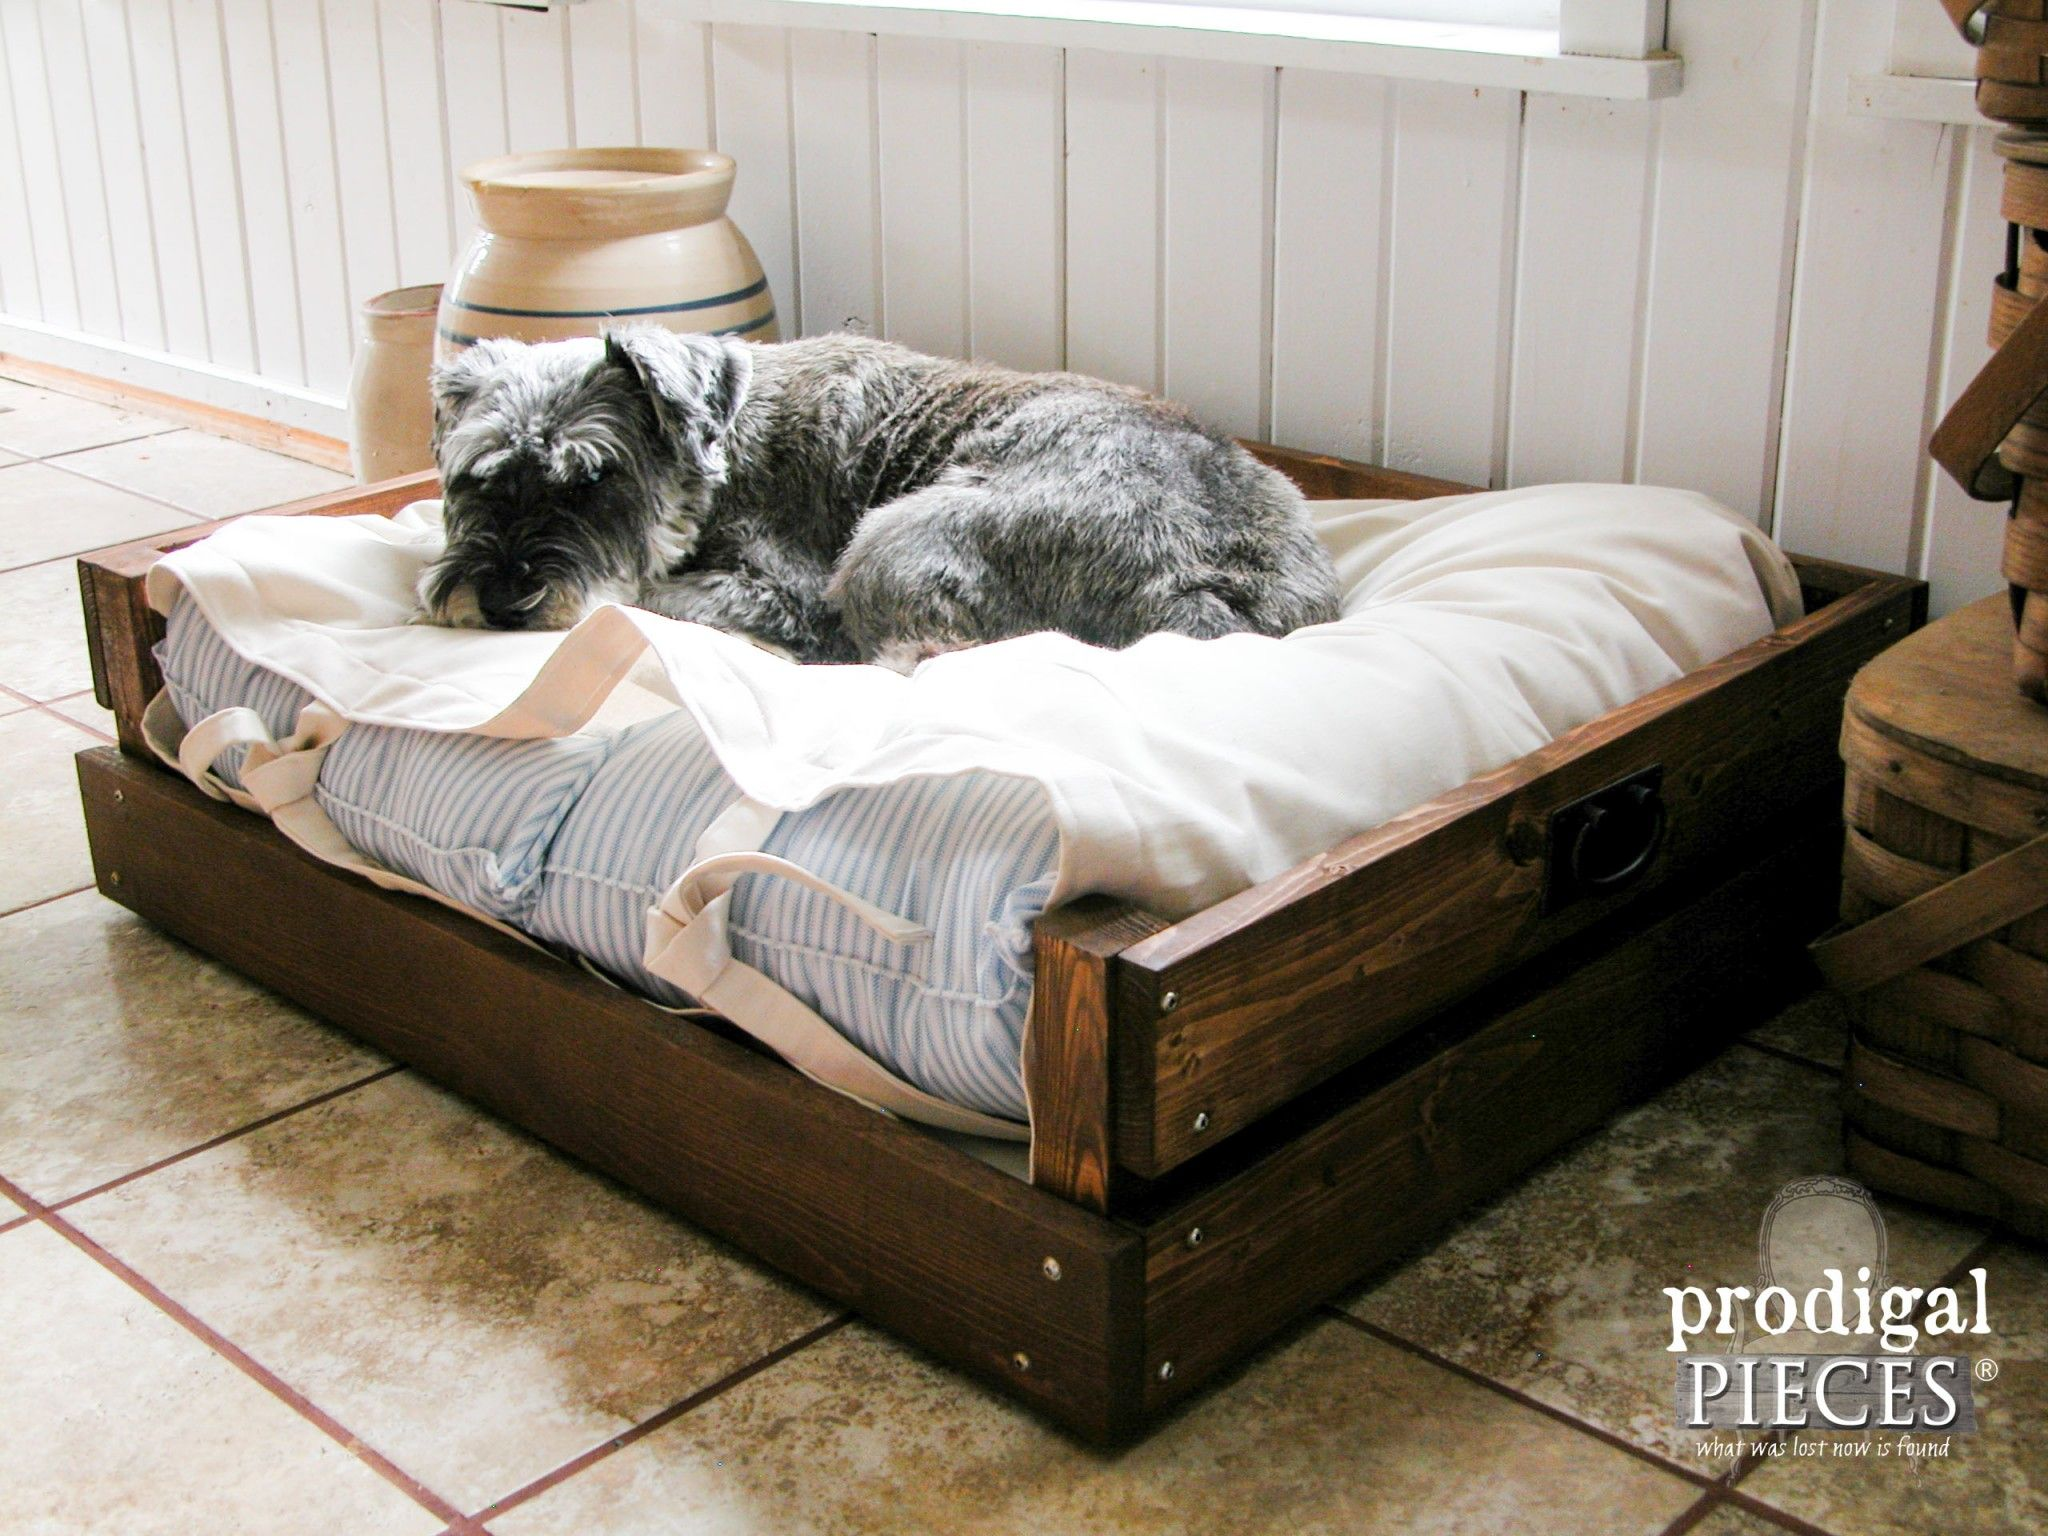 Dog Laying In Diy Pet Bed By Prodigal Pieces Www Prodigalpieces Cm